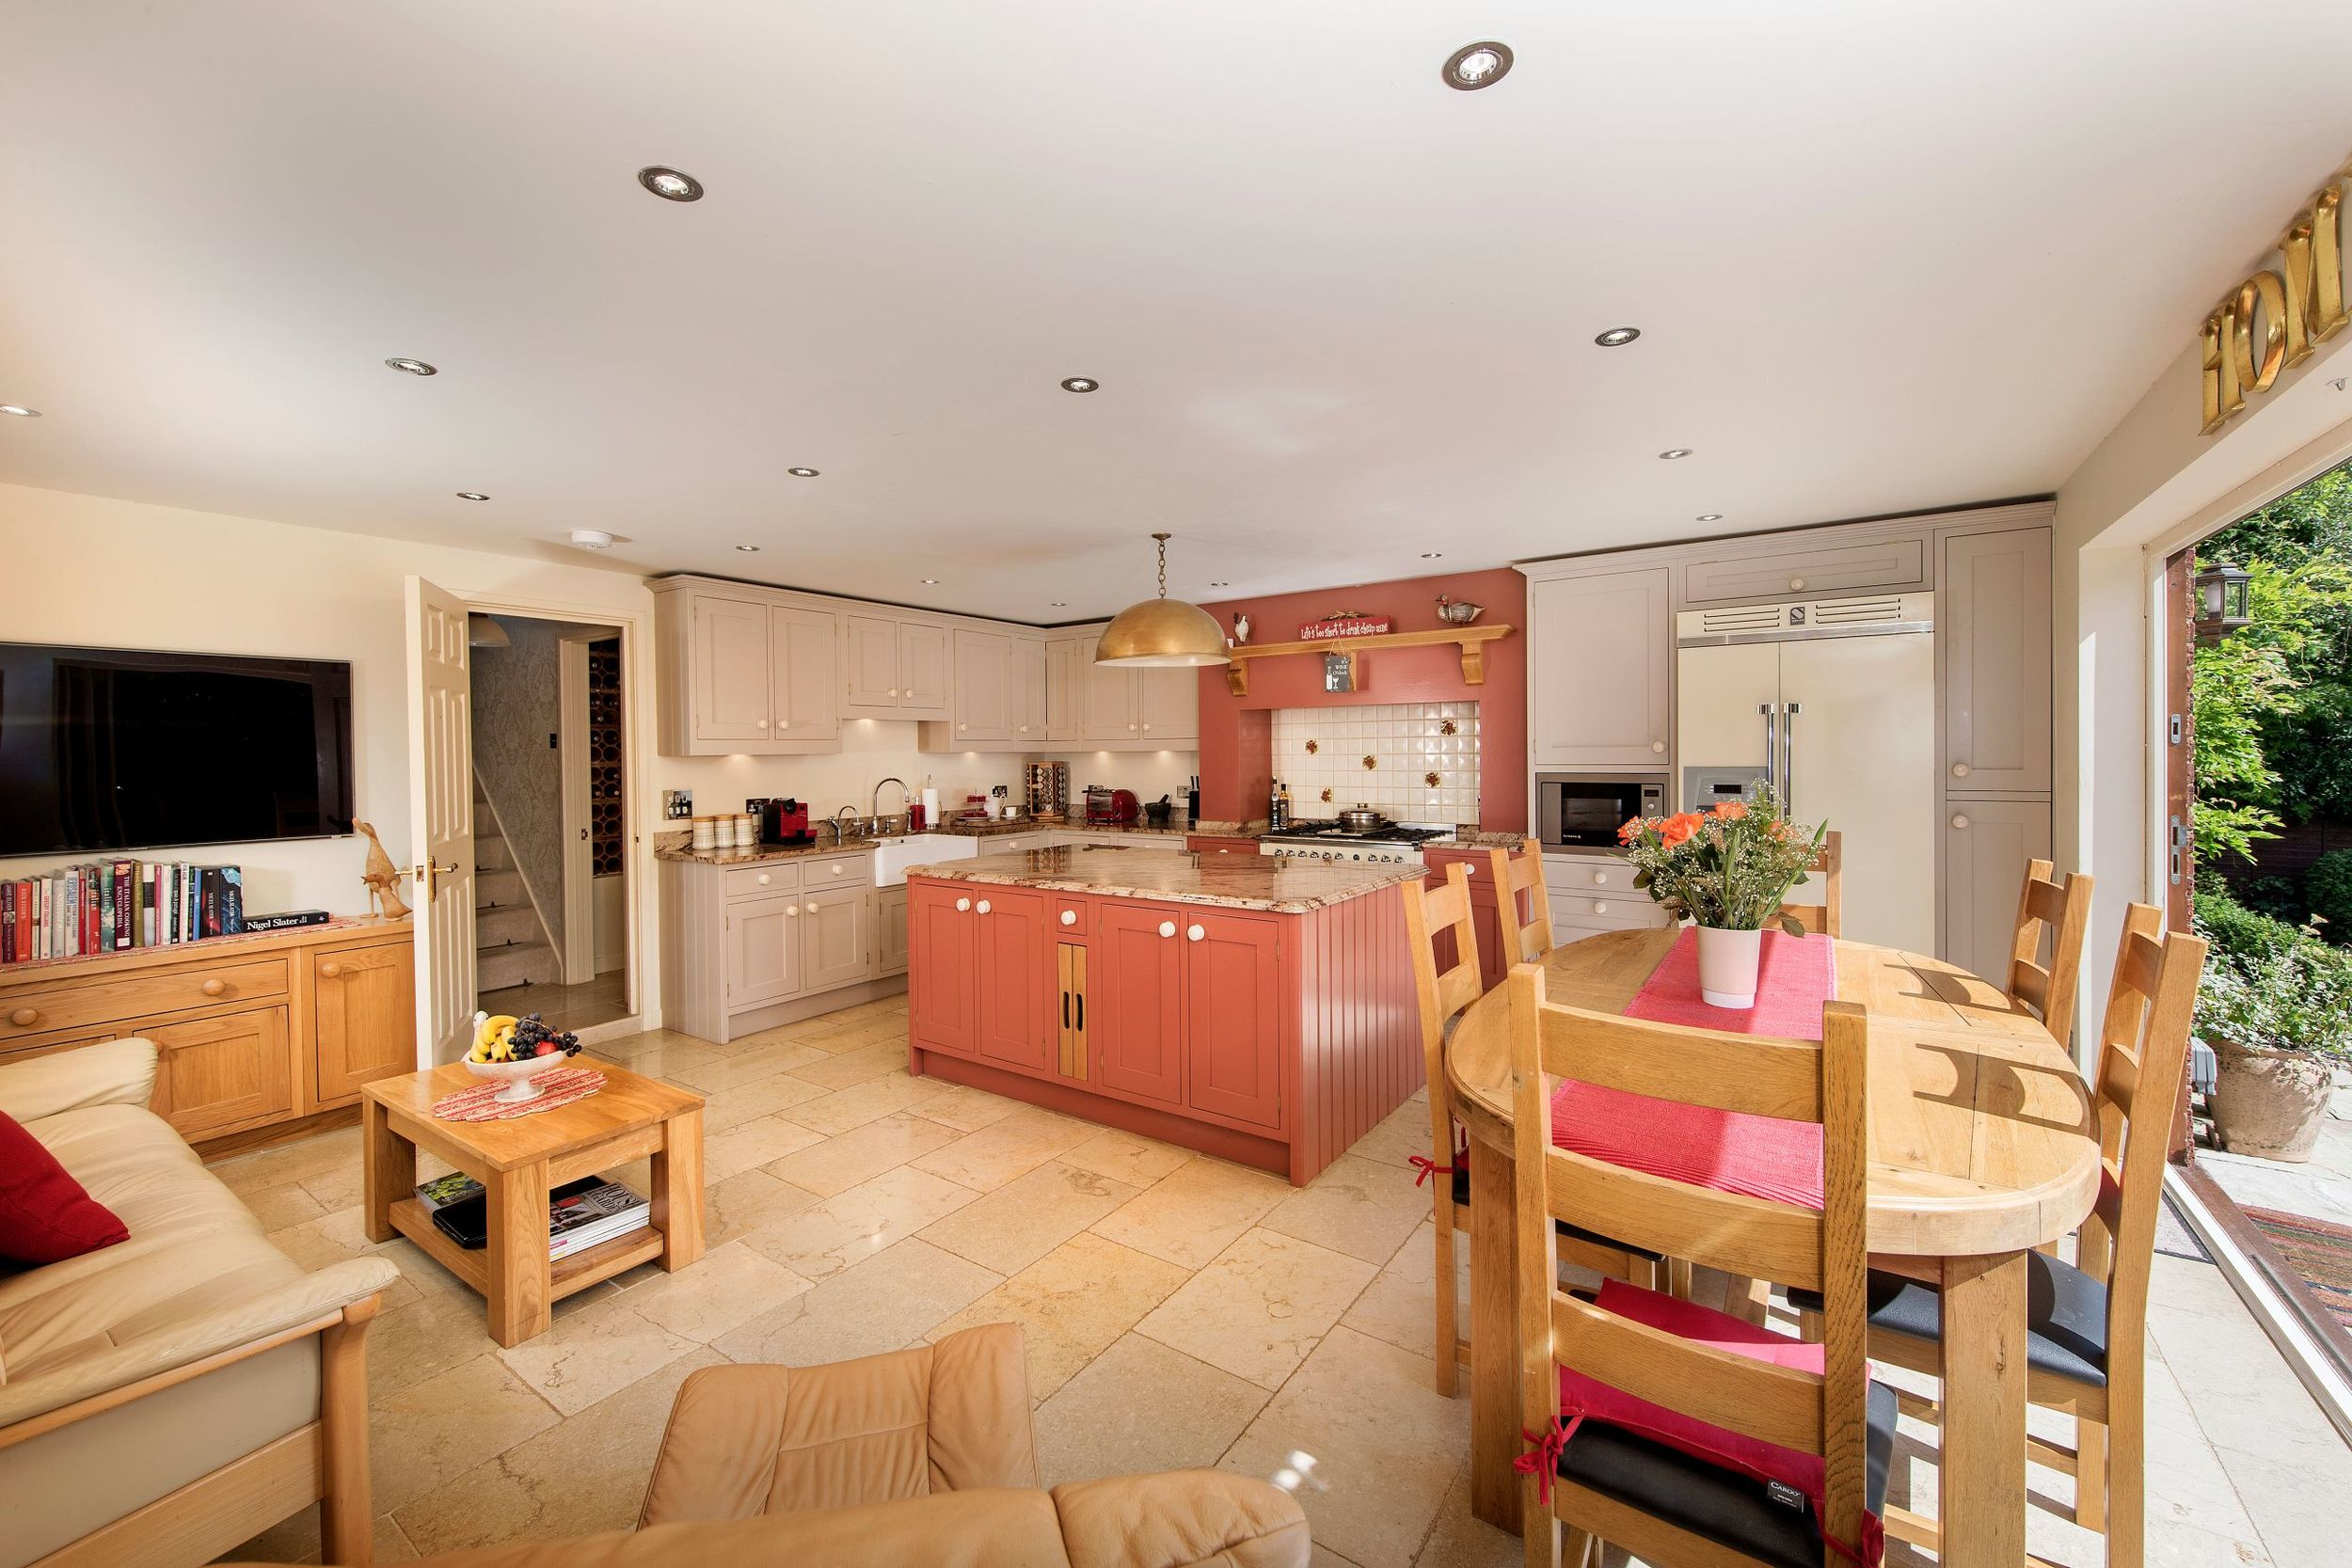 Draycote-Kitchen-02A.jpg